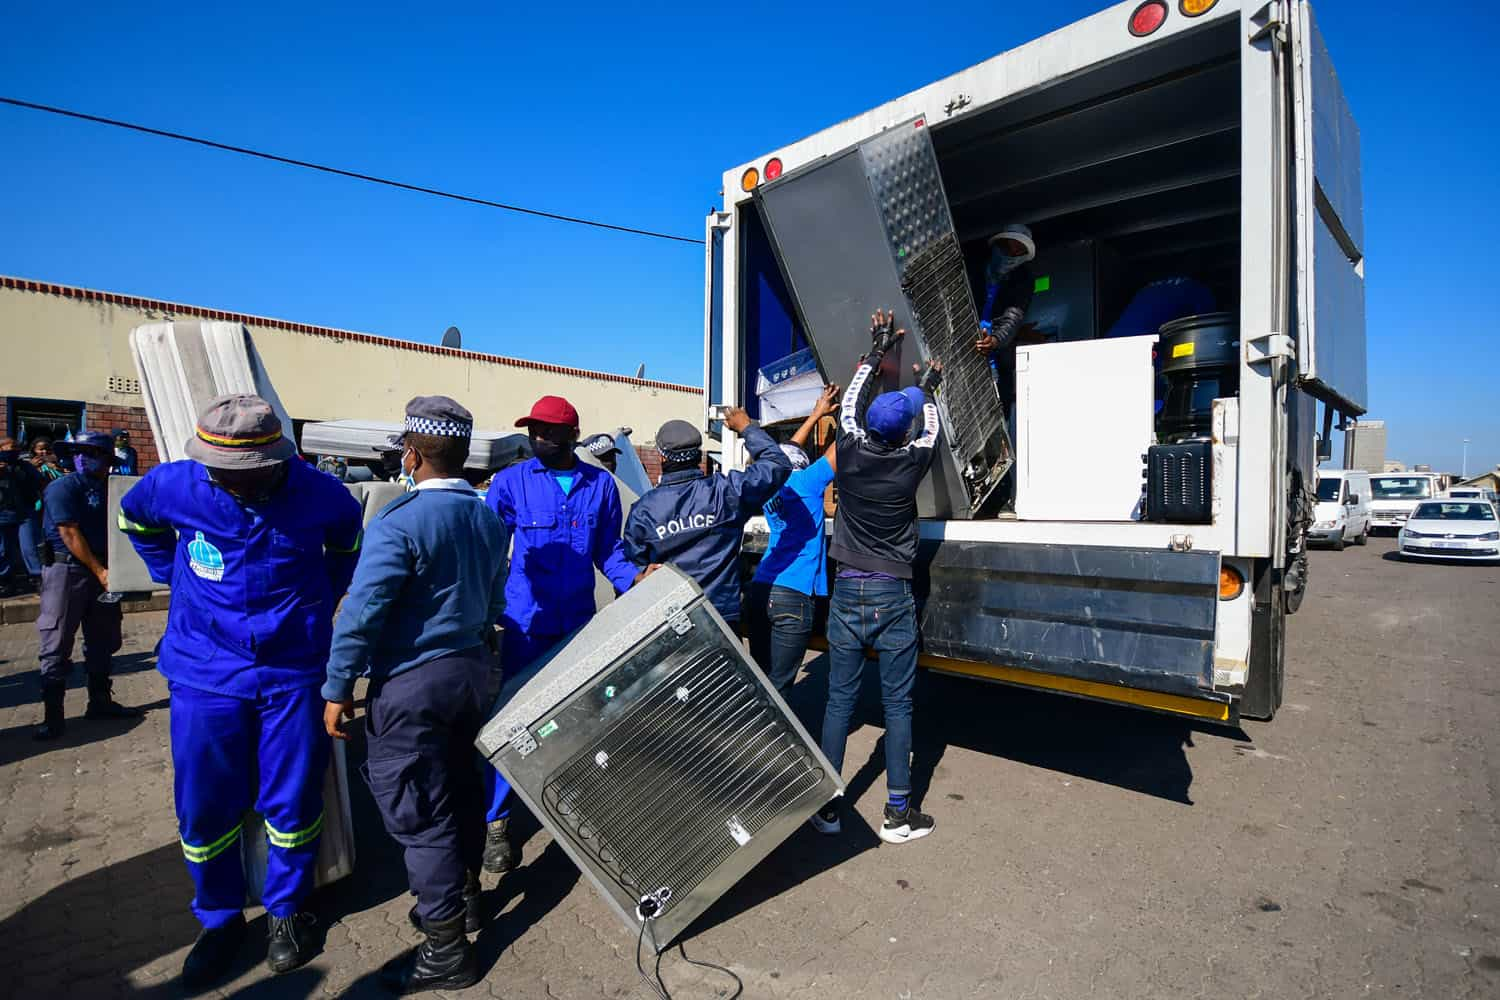 Police confiscate suspected looted goods in Durban CBD